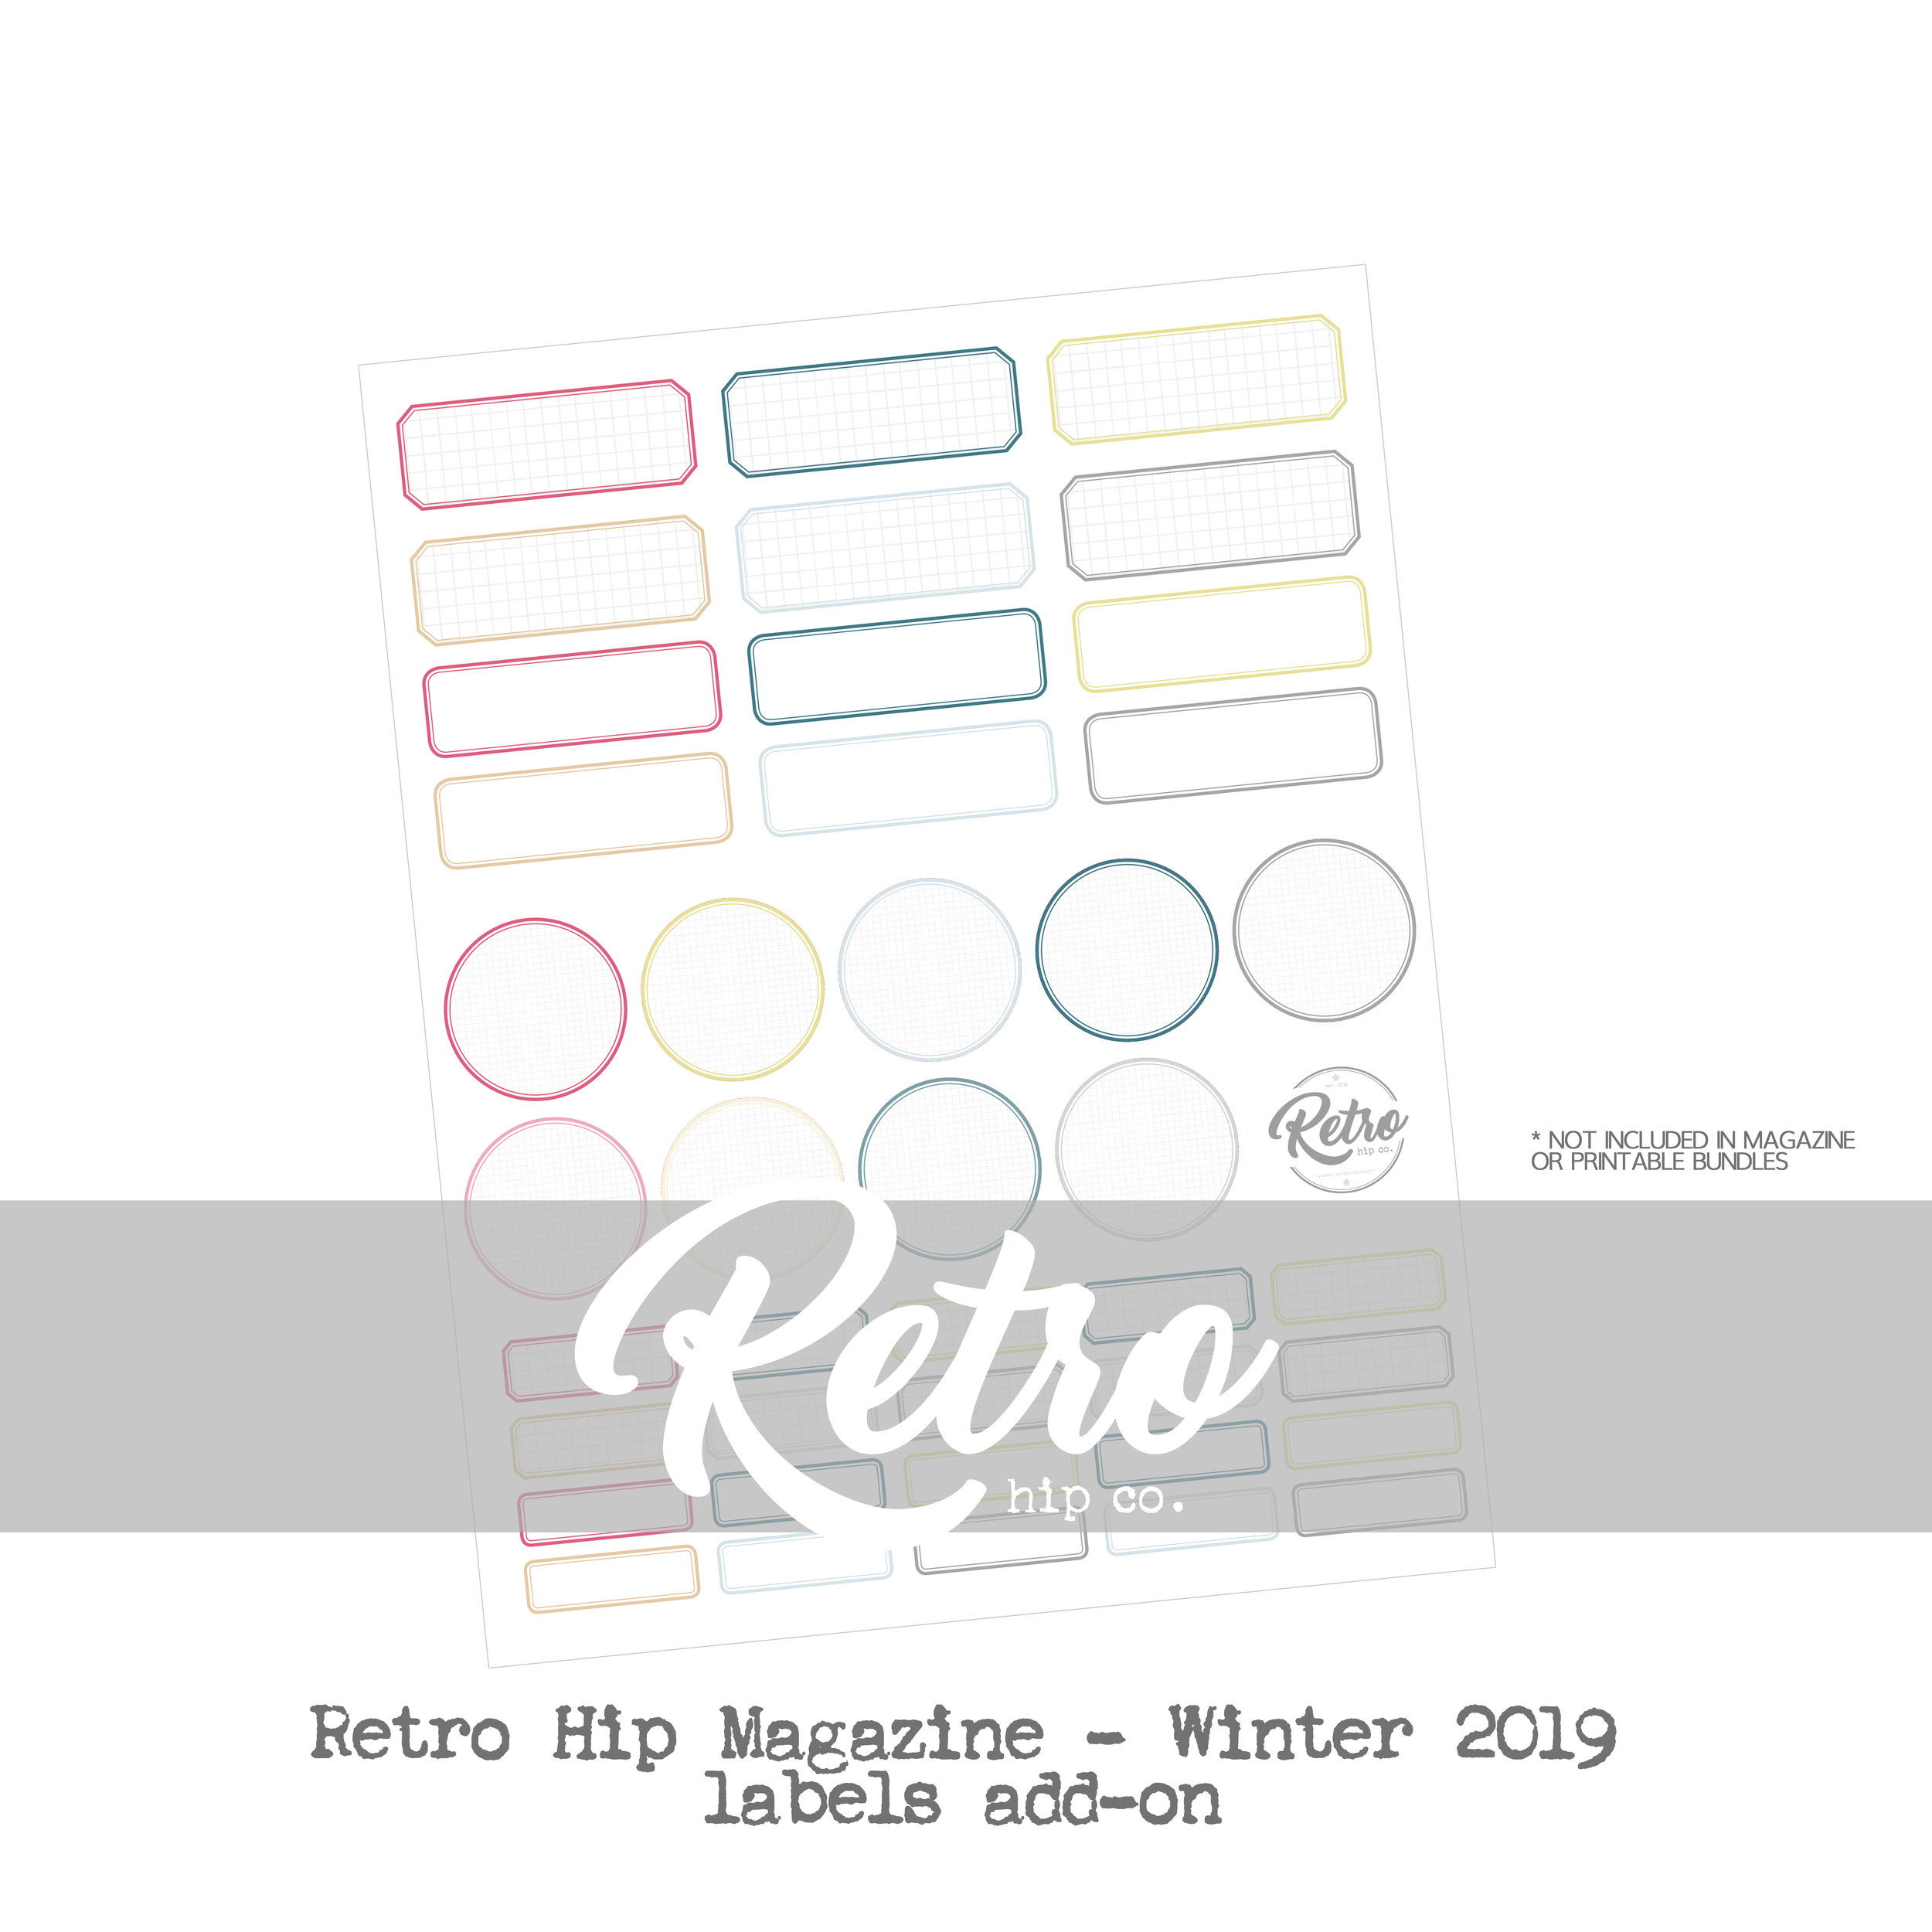 Retro Hip Magazine Add-on - Winter 2019 - Labels only